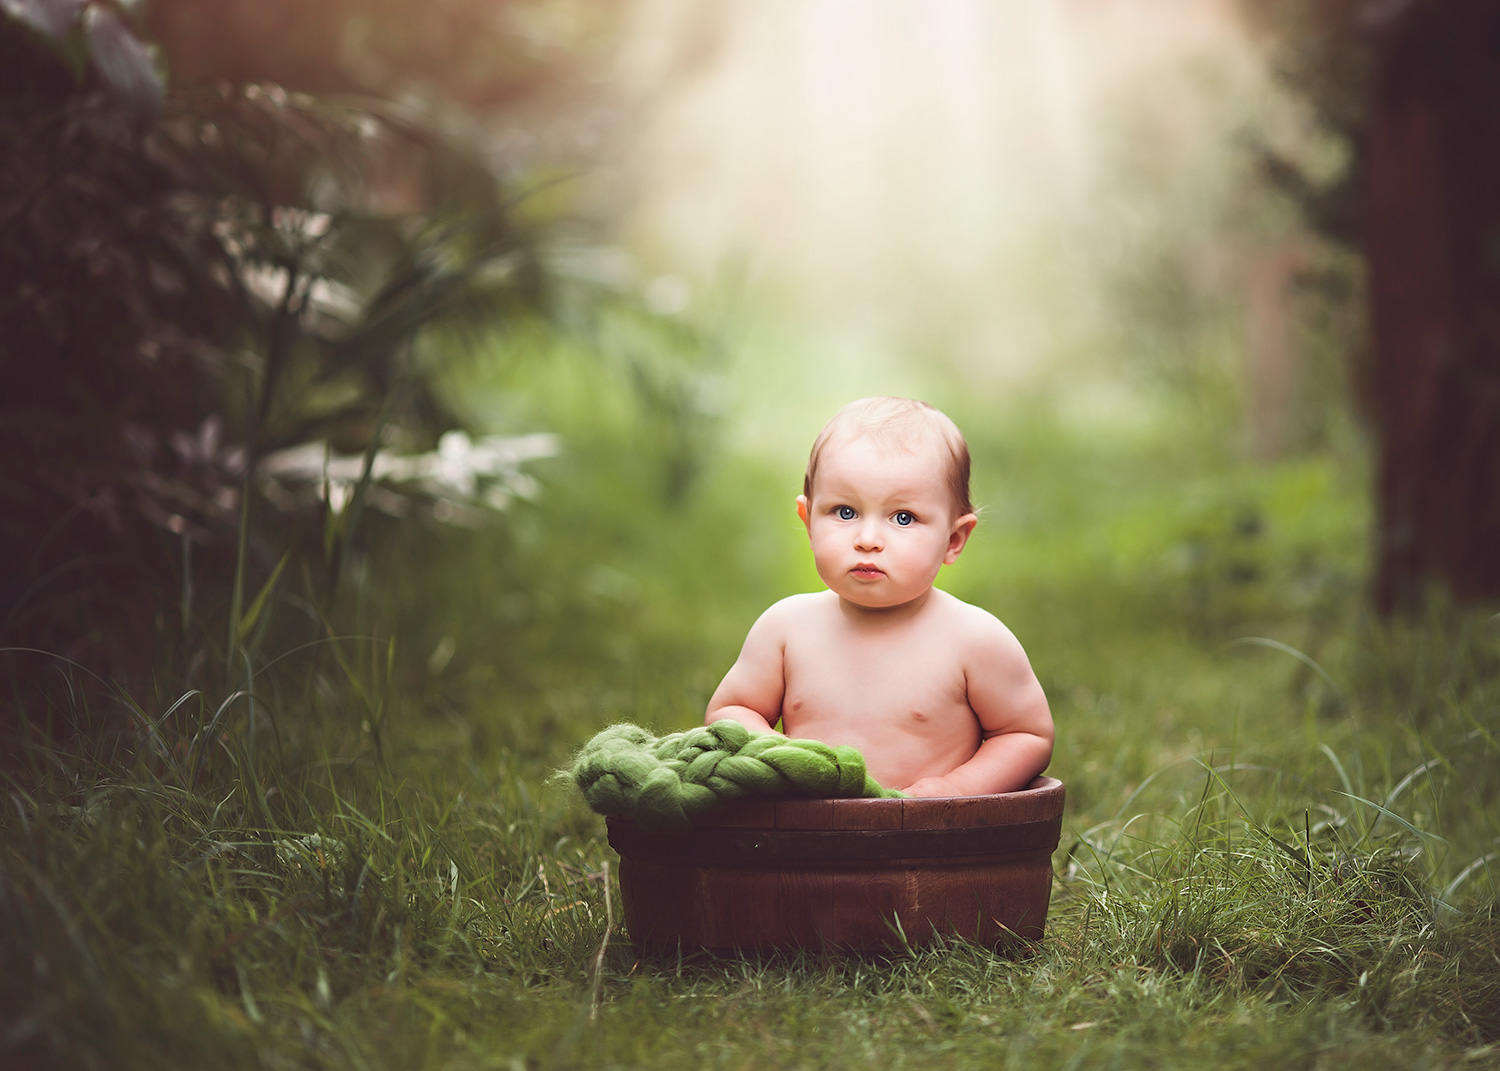 baby-fotoshoot-outdoor